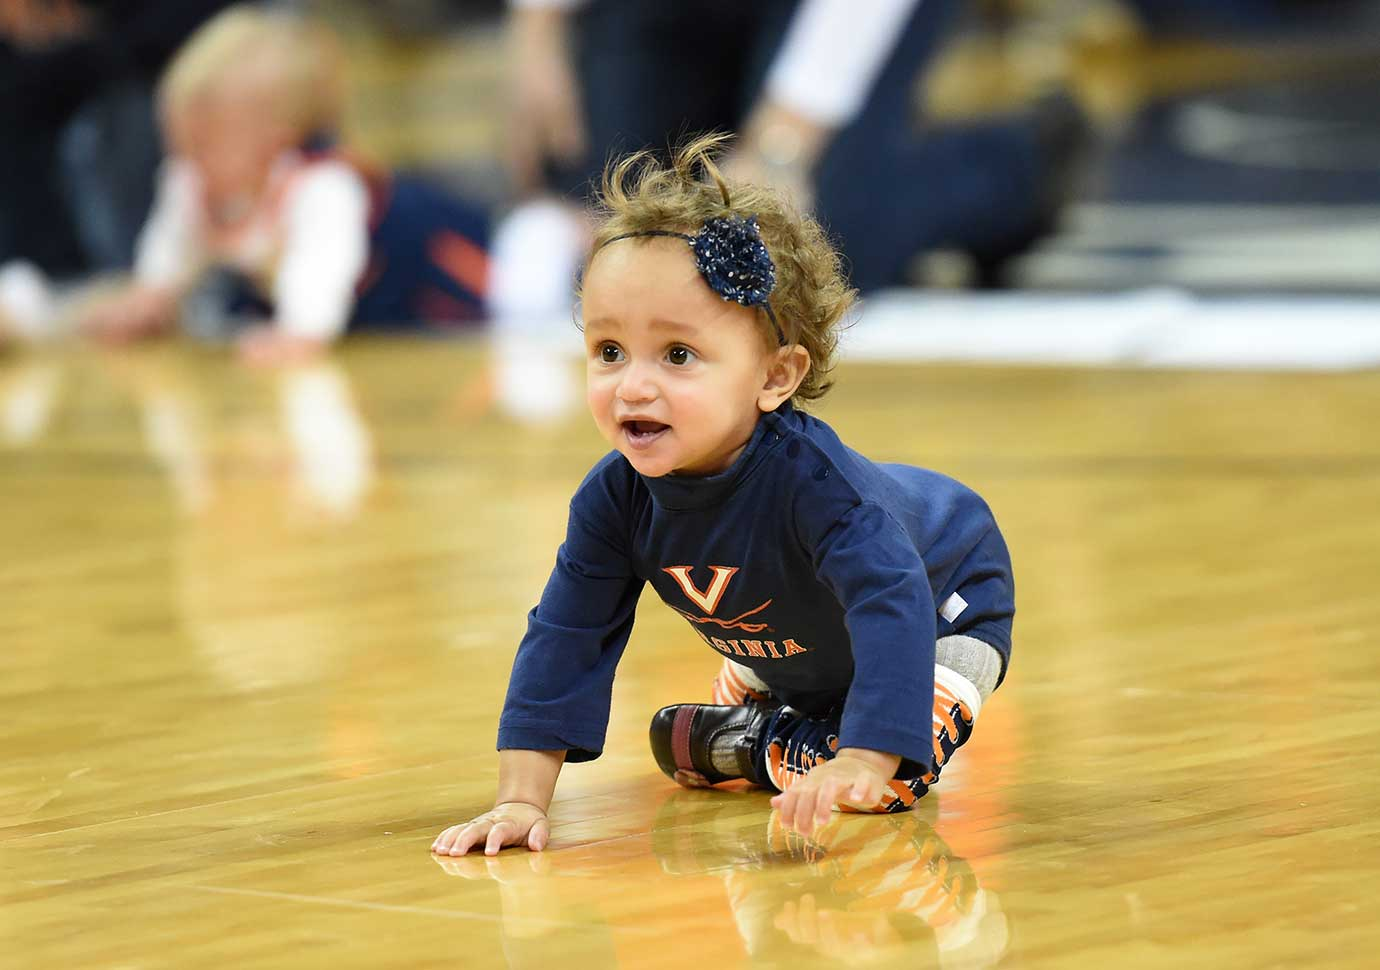 Virginia held a diaper derby before its game against the Virginia Tech Hokies Tuesday night.